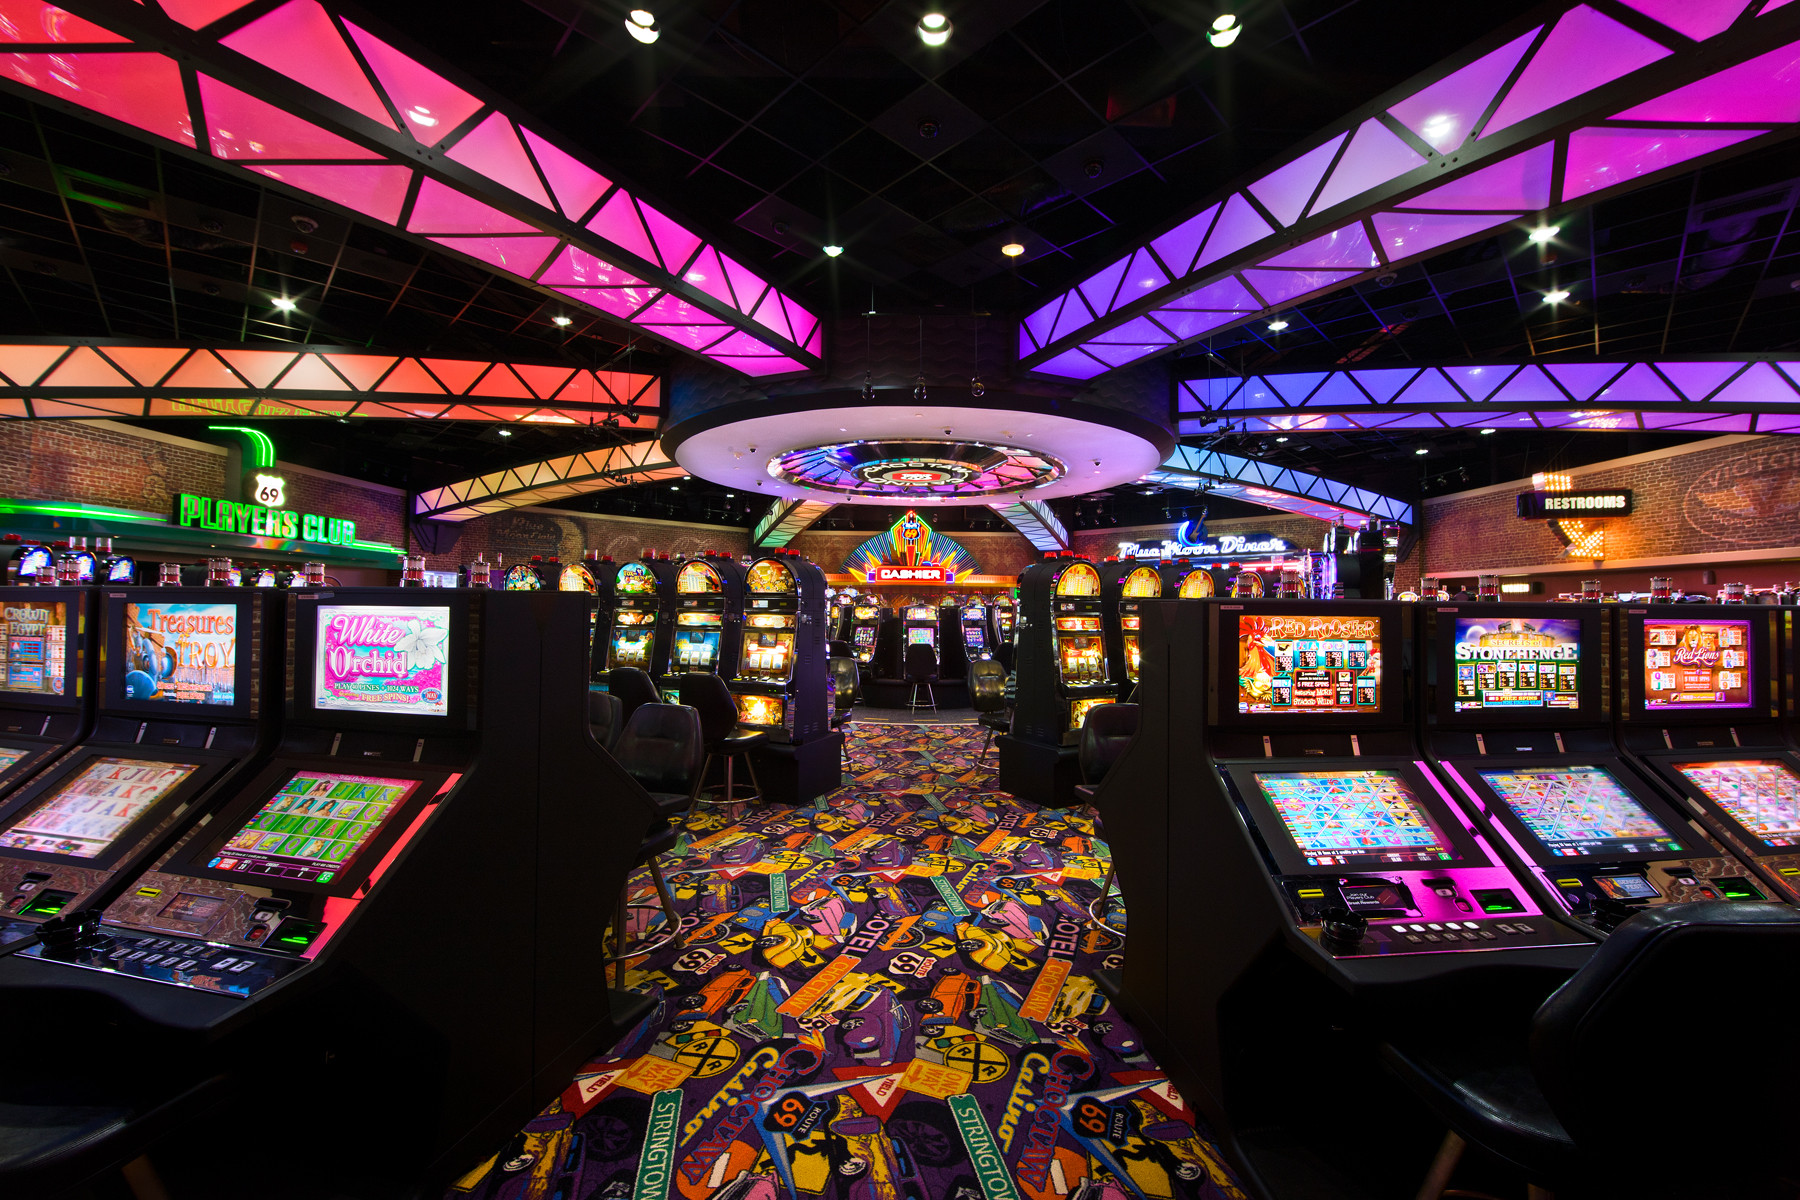 Route-69-Casino-Interior-casino-design-1800x1200